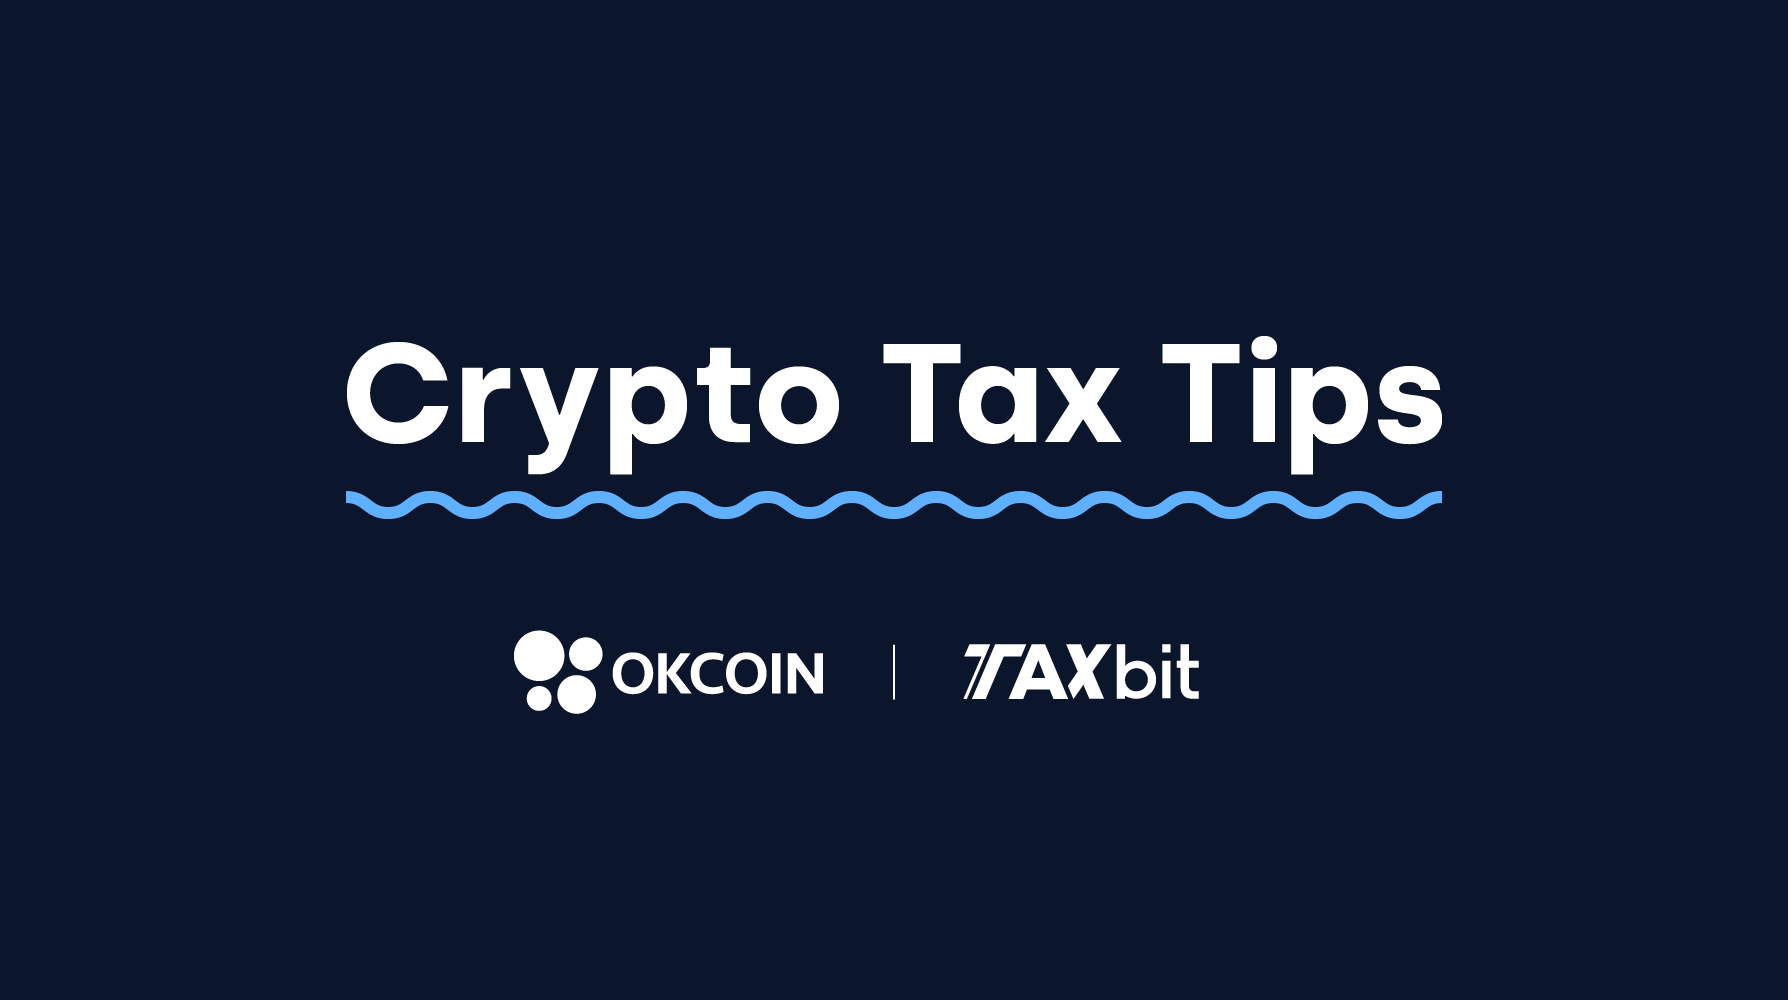 TaxBit and OKCoin image